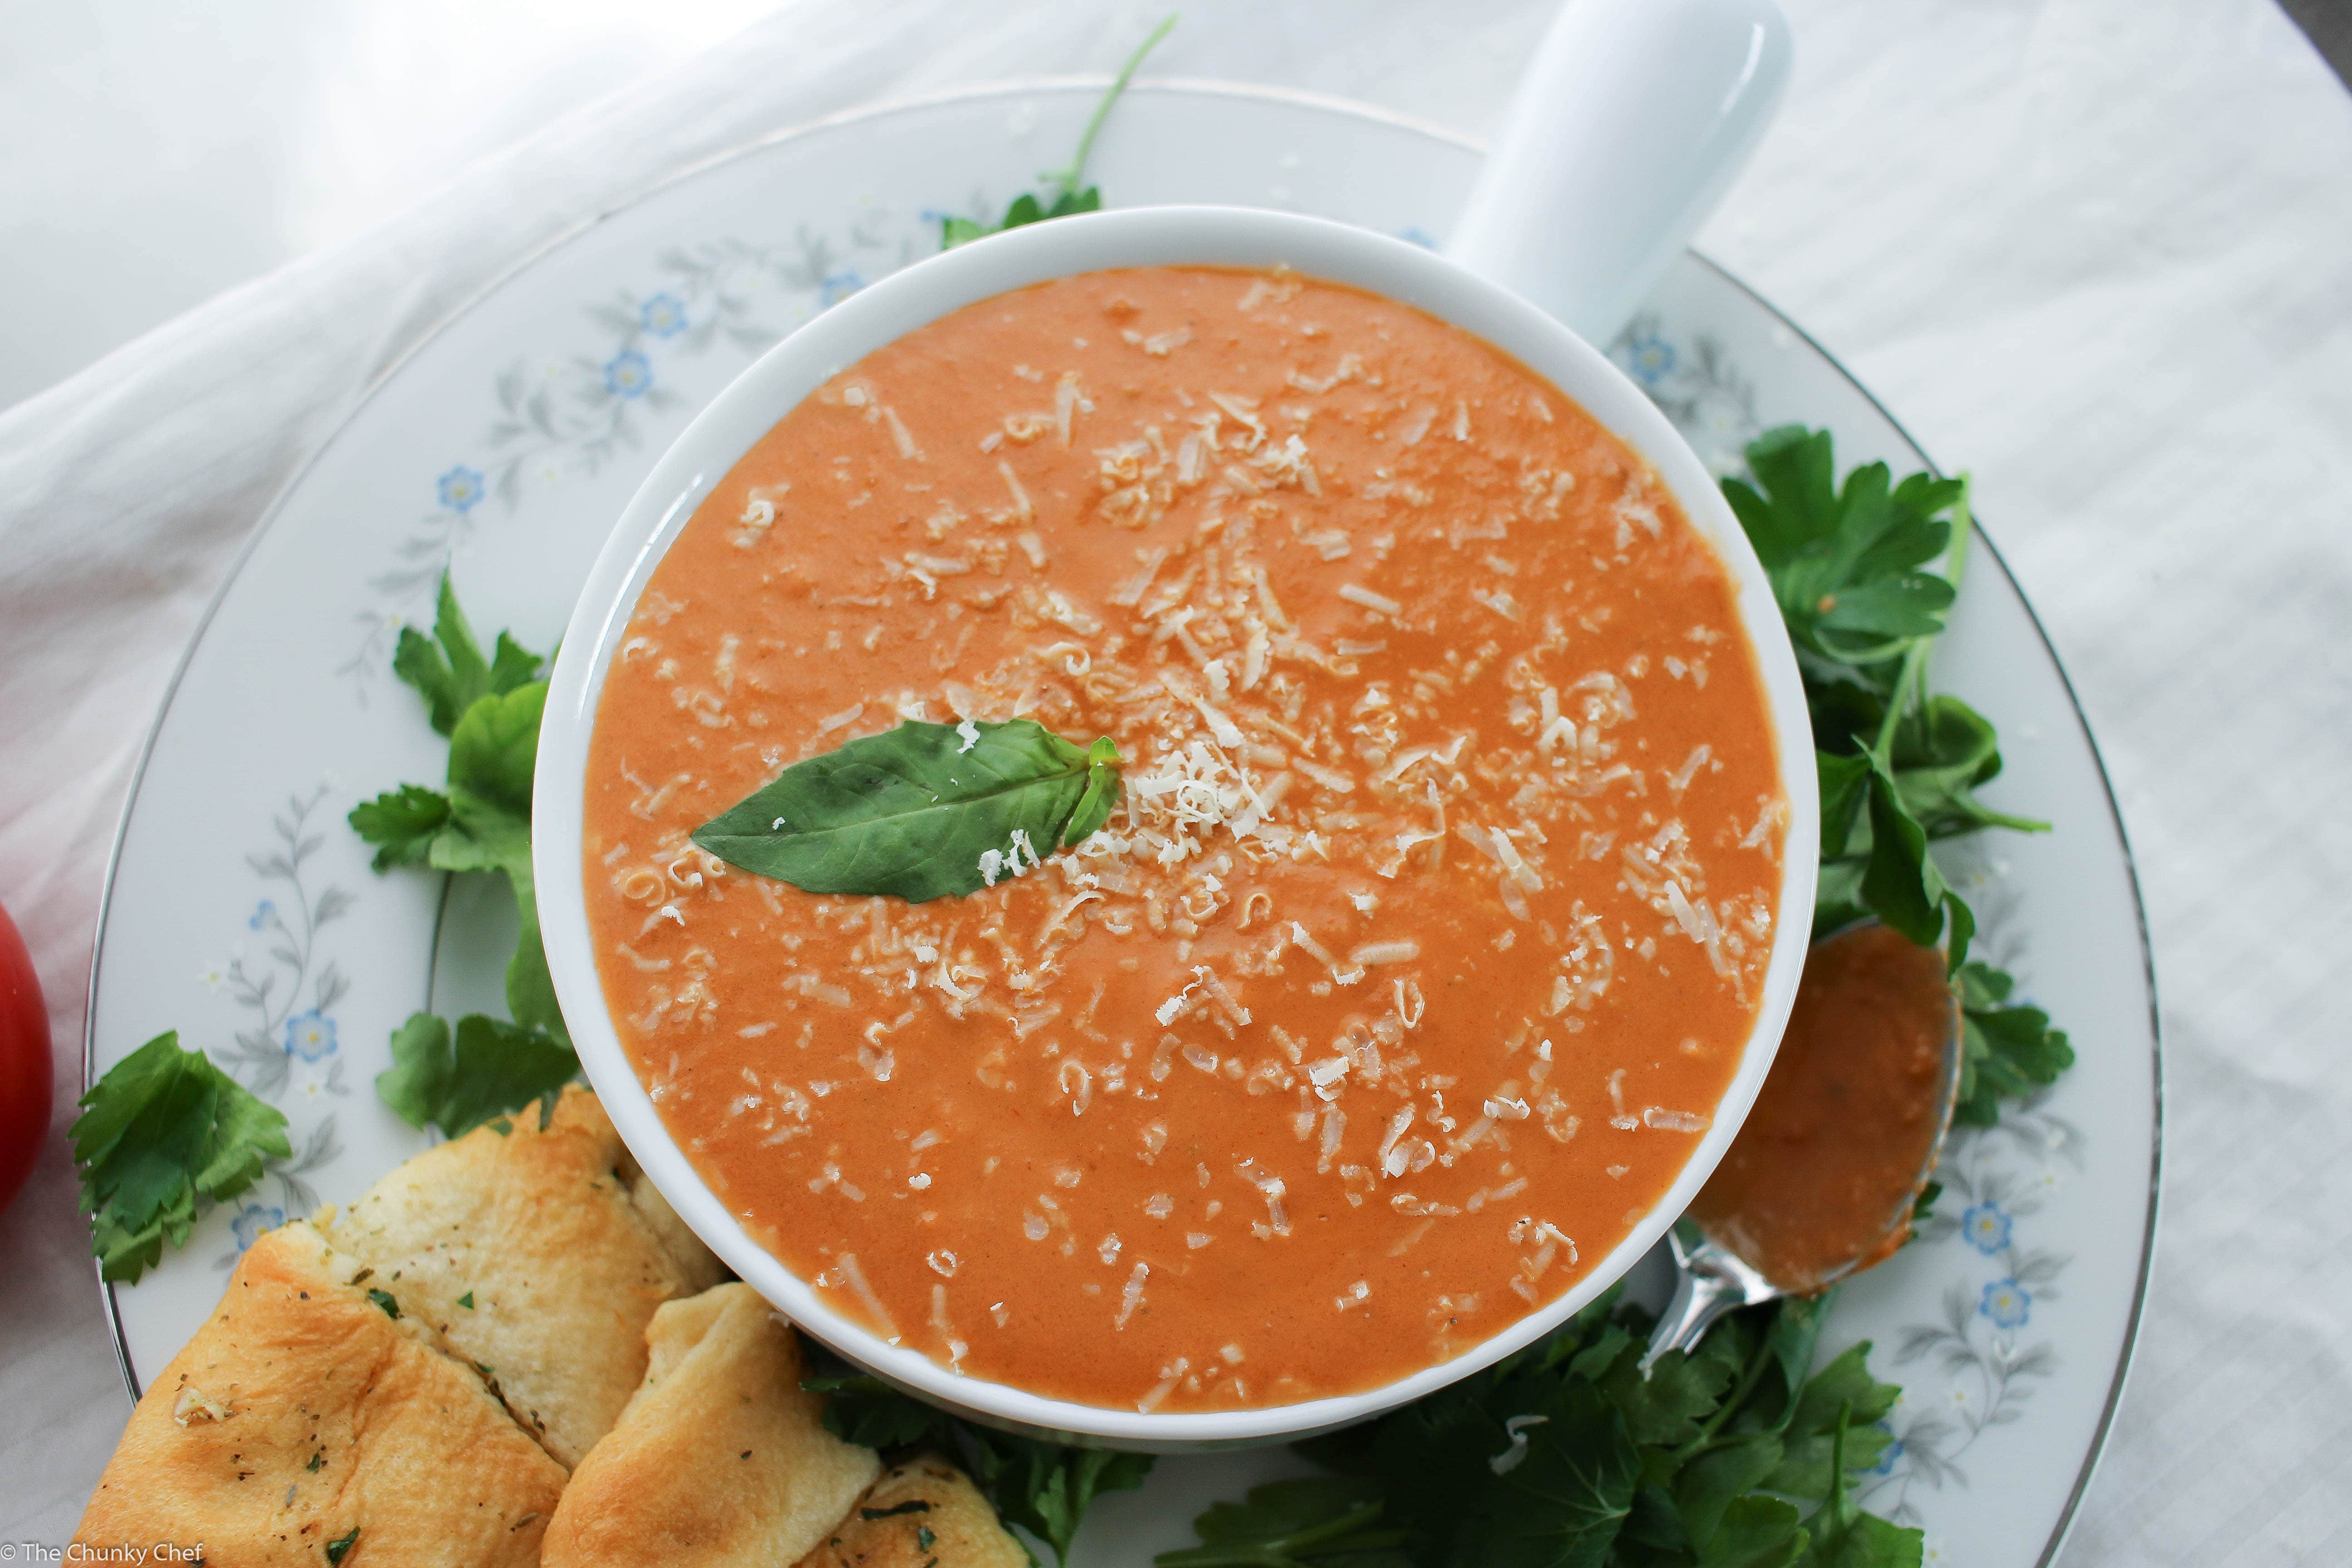 Slow Cooker Creamy Tomato Basil Soup - The Chunky Chef